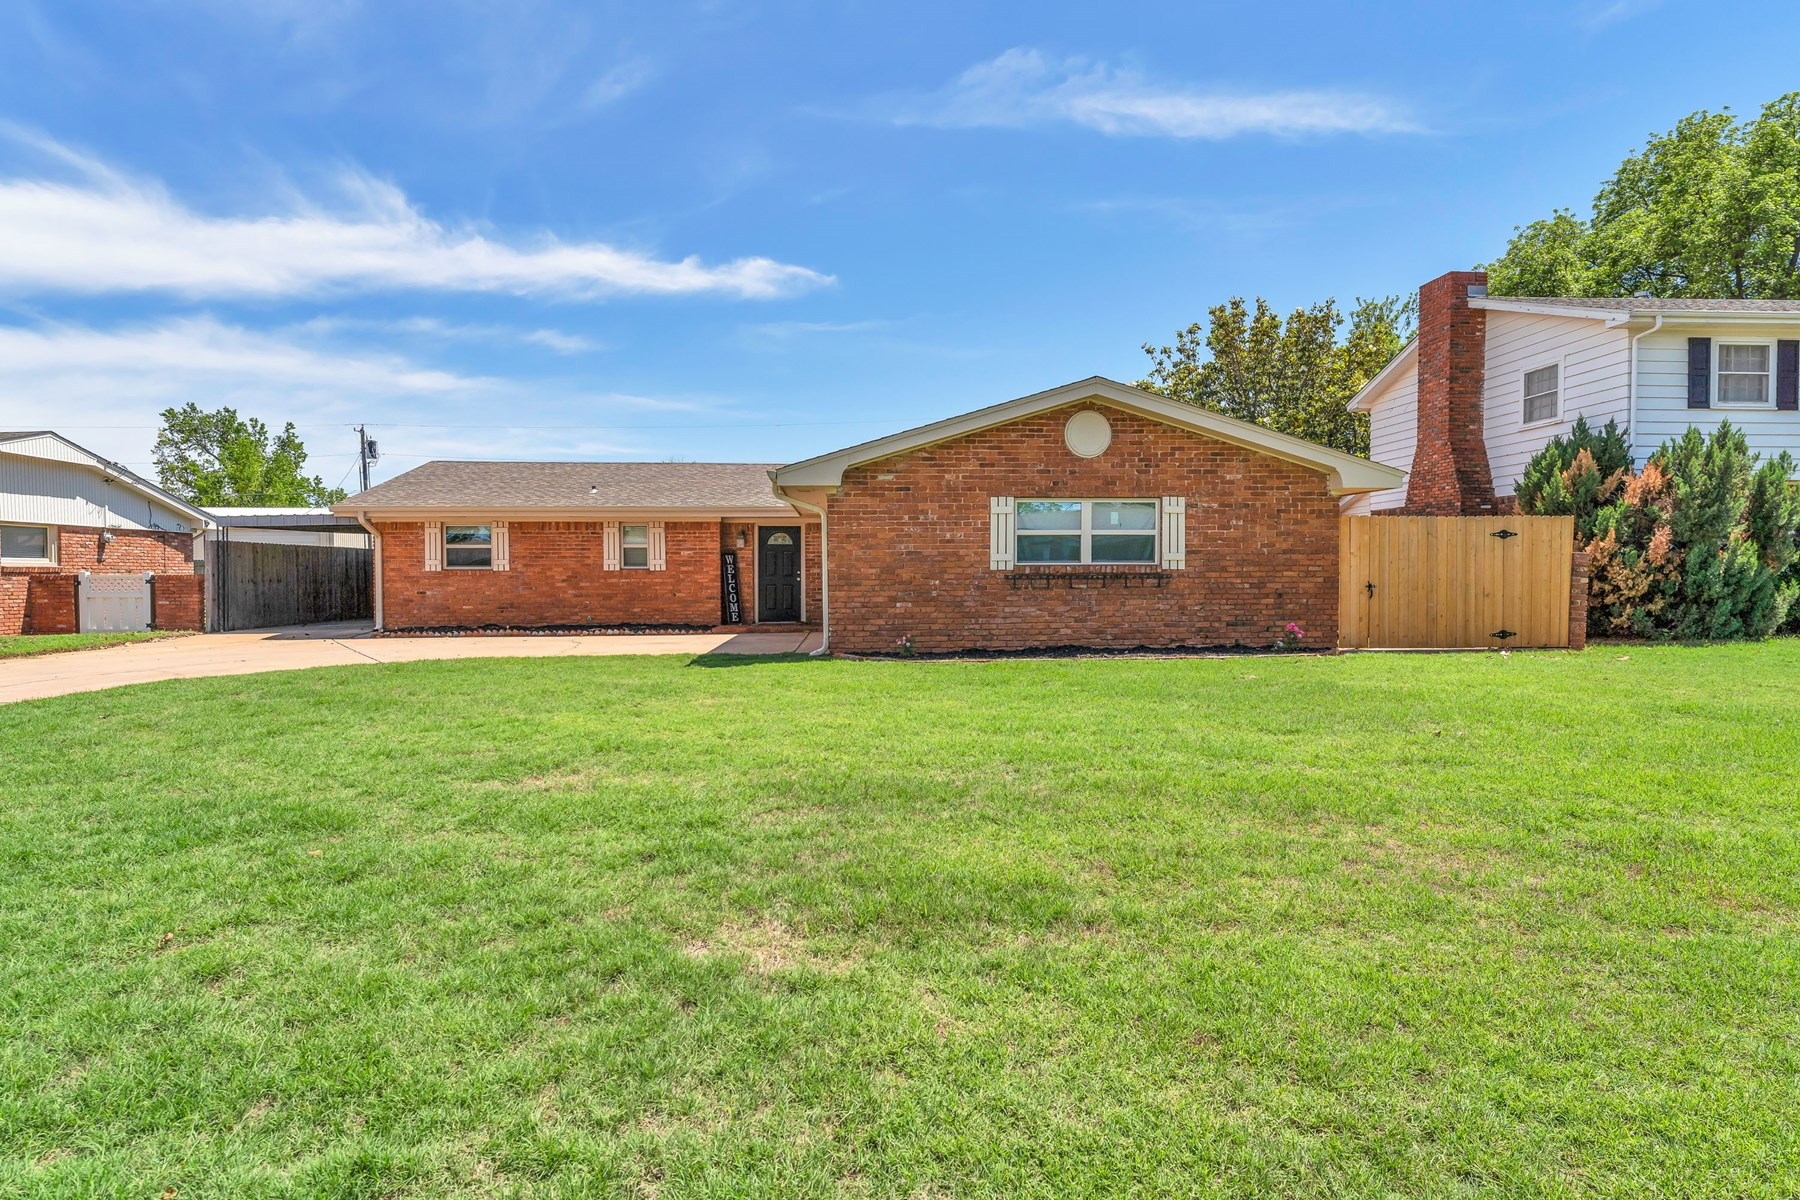 Beautiful updated home in a highly desirable neighborhood.